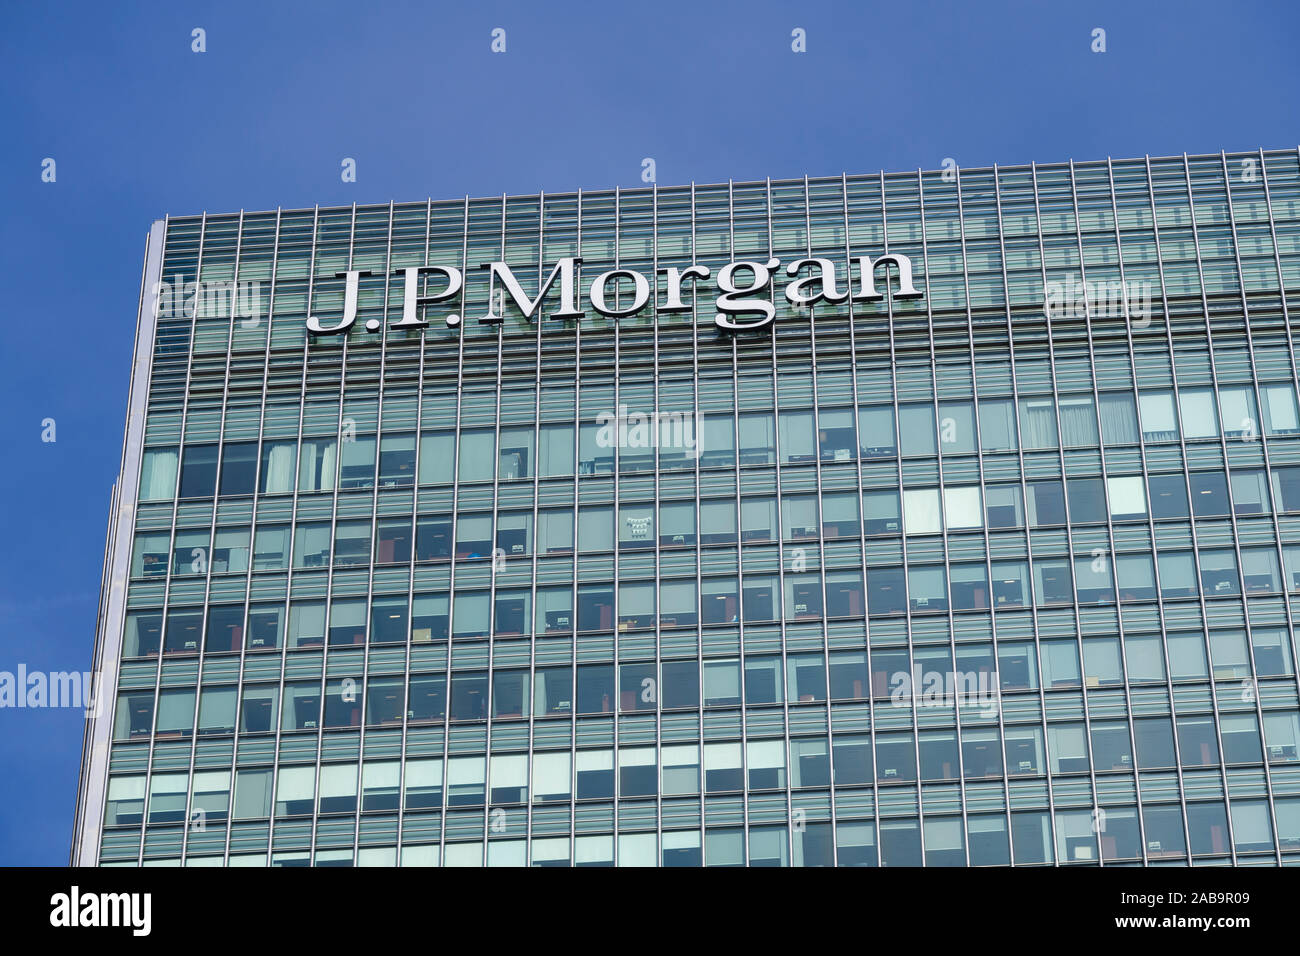 JP Morgan Bank, building, Canary Wharf, Financial district, London, UK    Canary Wharf business district is constructed on part of the old London dock Stock Photo